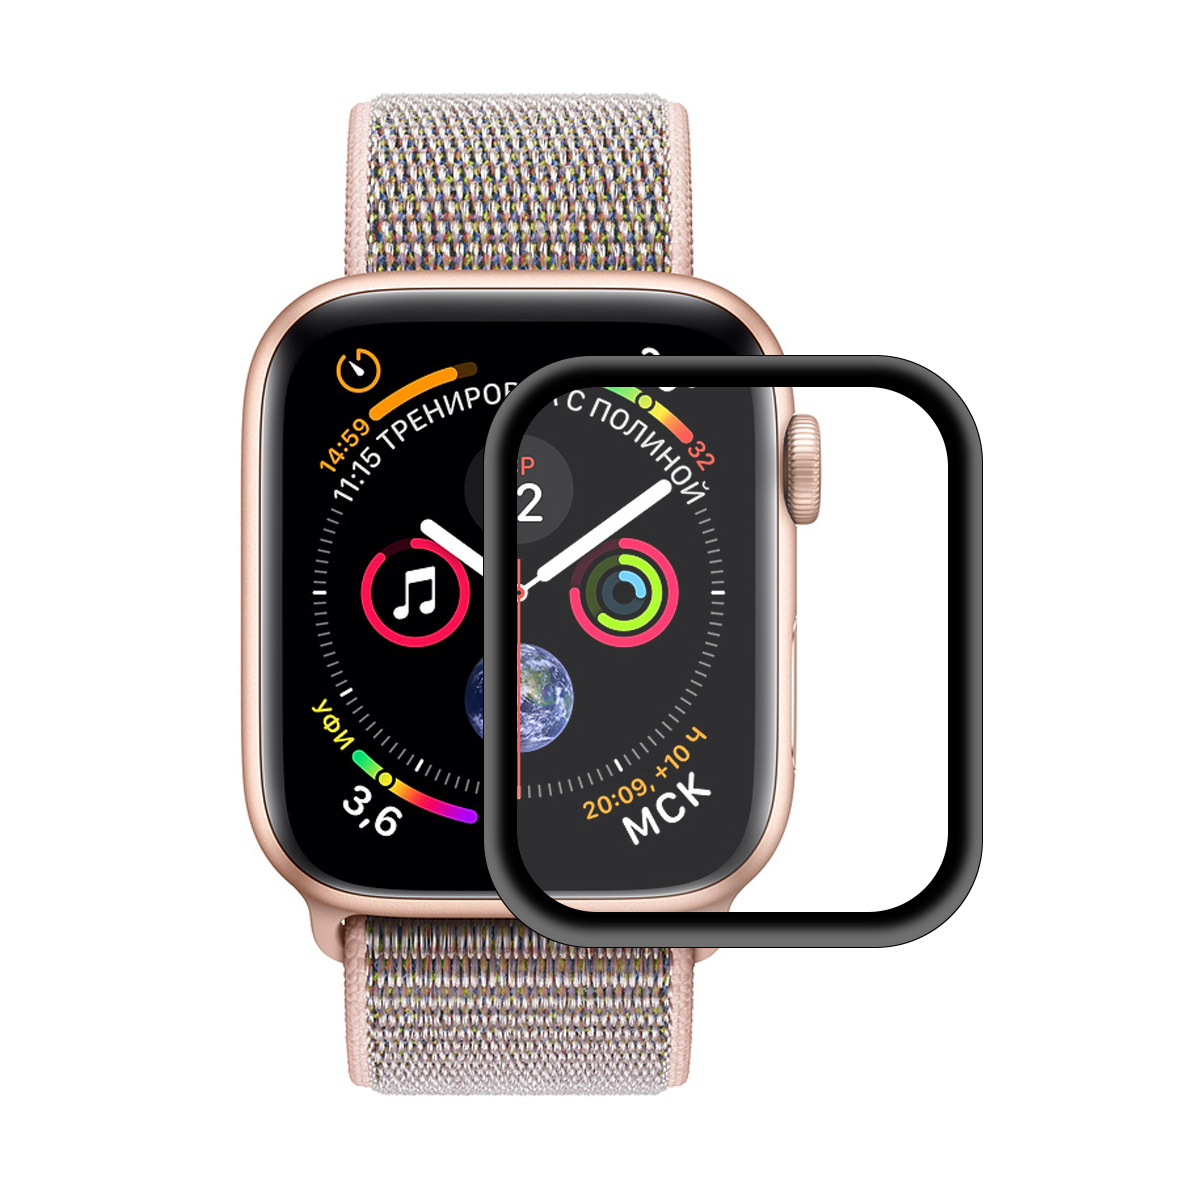 Enkay Tempered Glass Screen Protector For Apple Watch Series 4 40mm 0.2mm 3D Curved Edge 9H Film